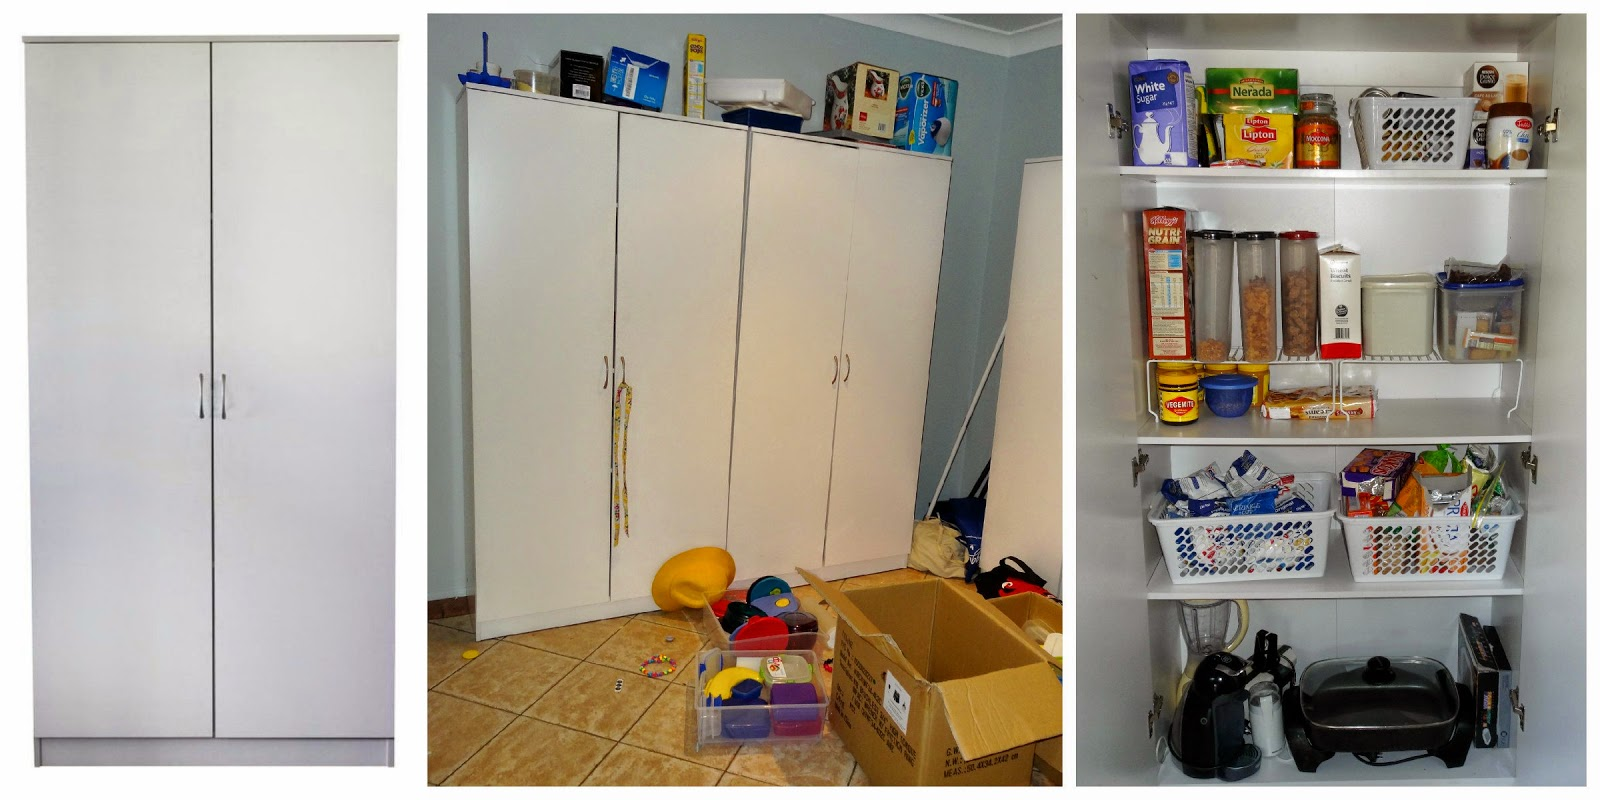 Excuse The Messy Middle Photo, It's From Before I Finished Unpacking!